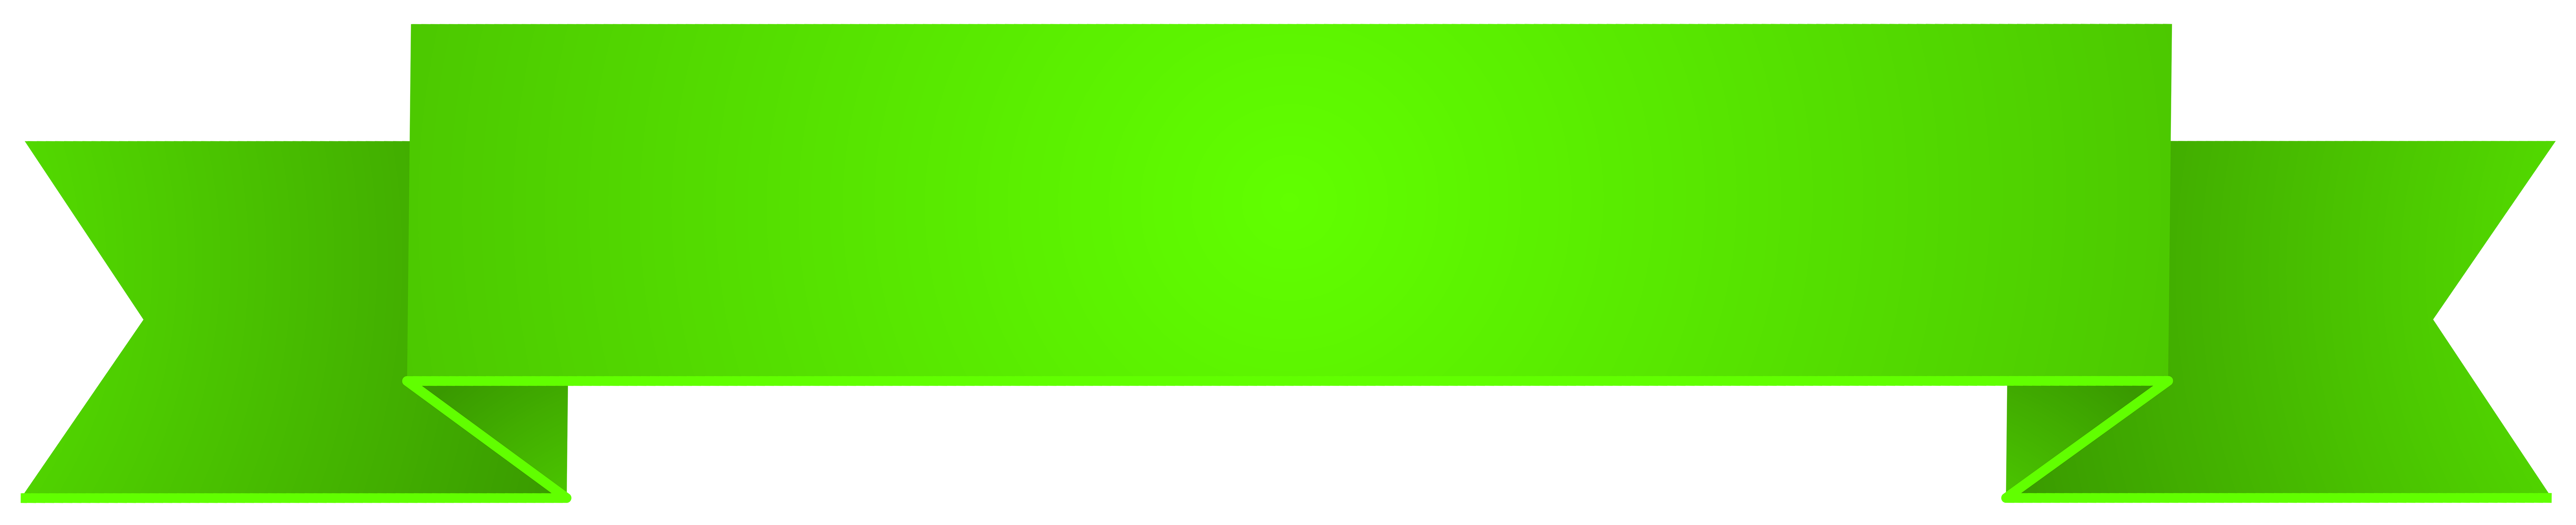 Lime banner png clip. Clipart bow light green